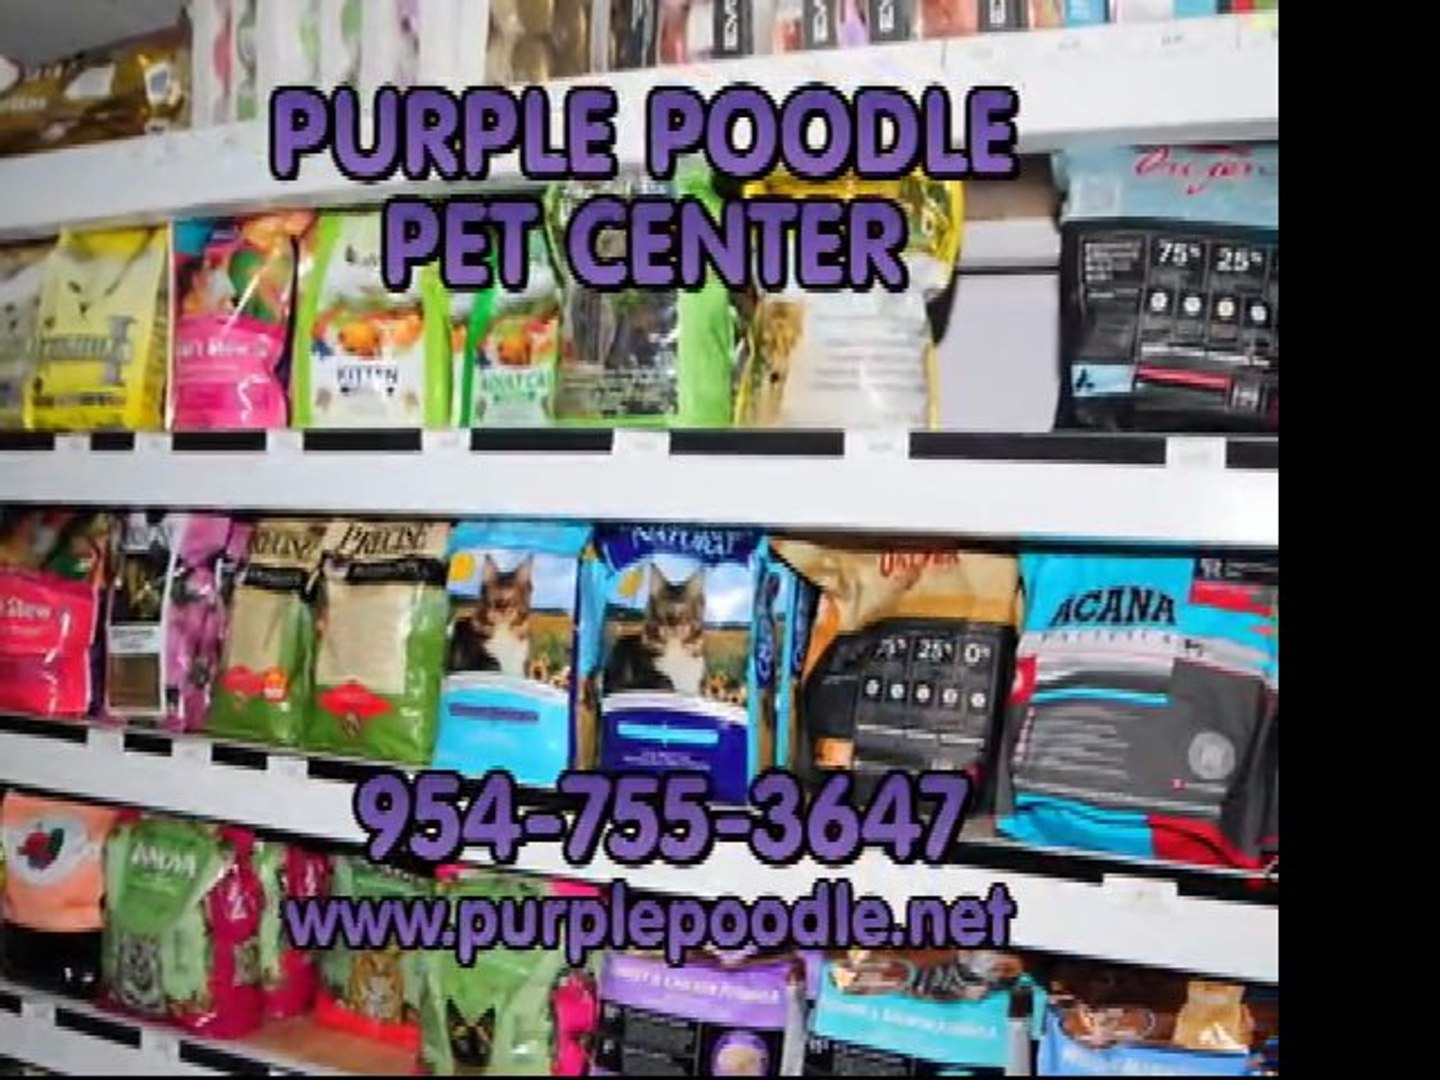 Purple Poodle Pet Center, 954-755-3647 Wheaten Groomer Shitzu, Poodle, Care. Coral Springs, Fl, www.